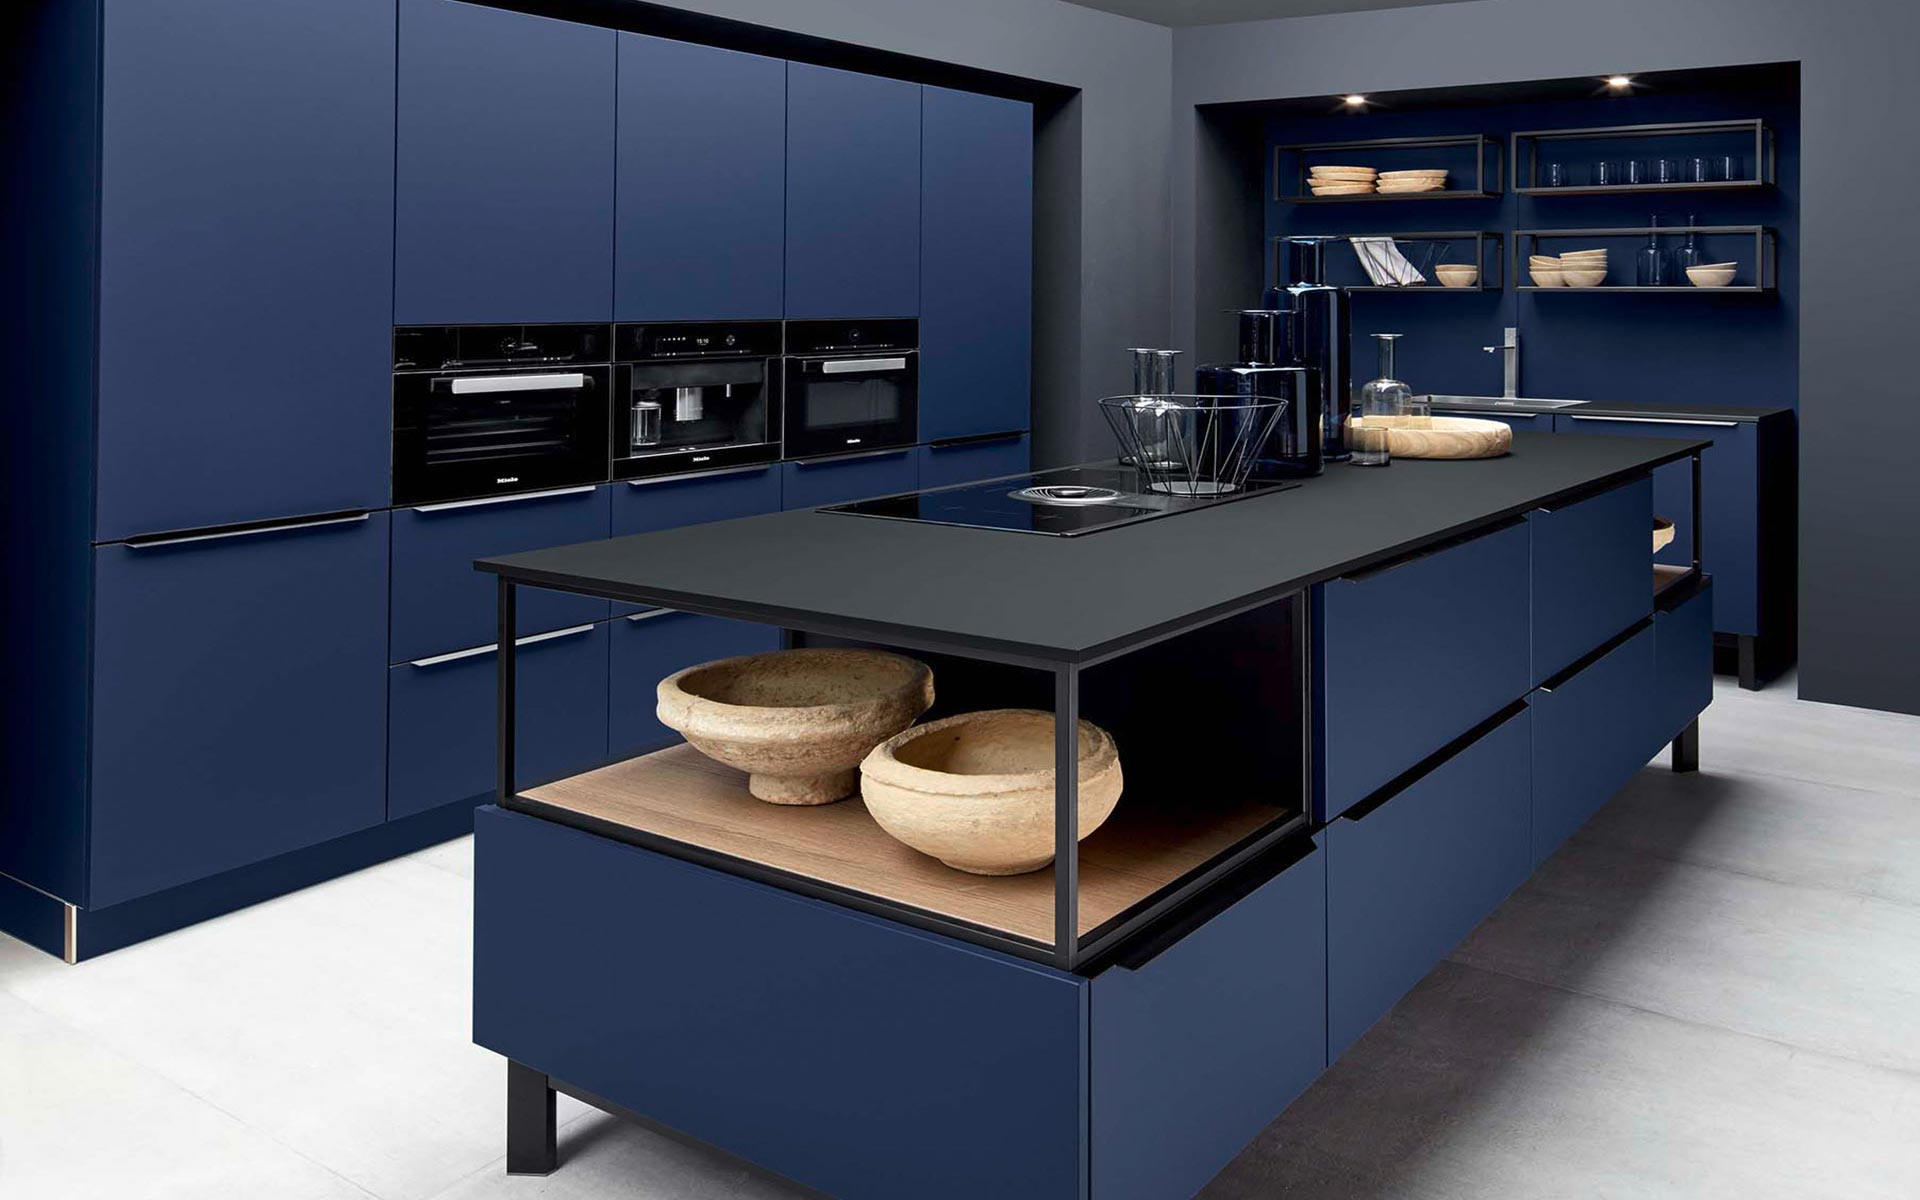 Toronto: Kitchens from Germany, Europe. Fenix Midnight Blue